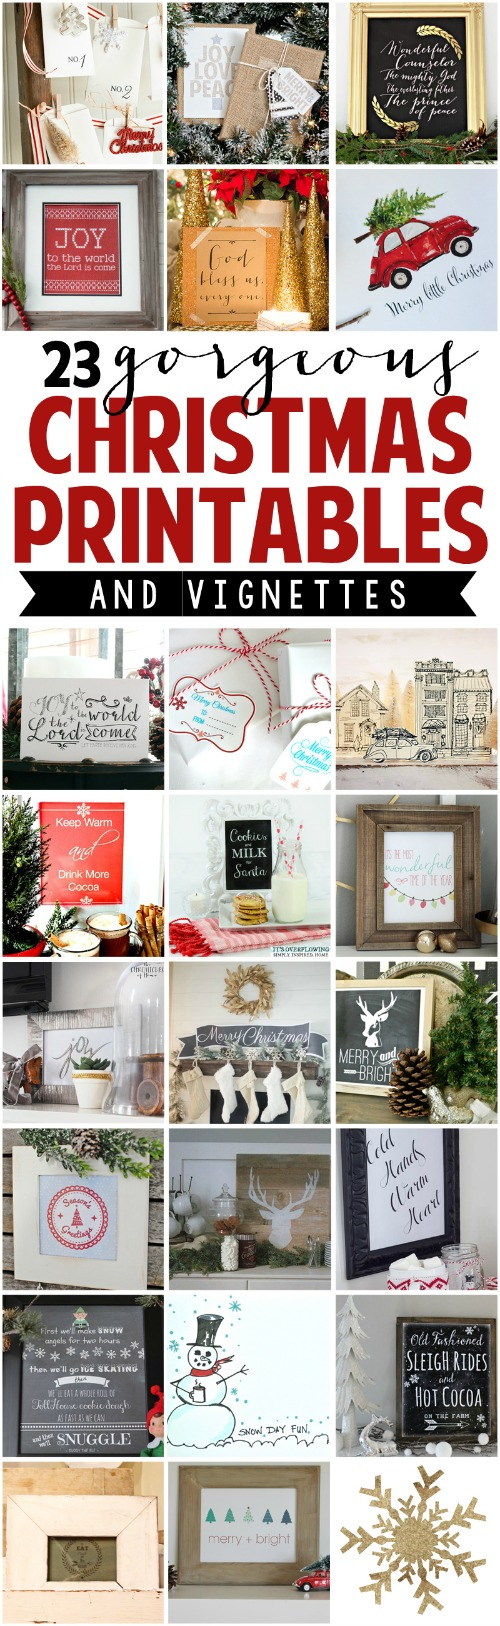 Beautiful collection of free Christmas printables! // cleanandscentsible.com